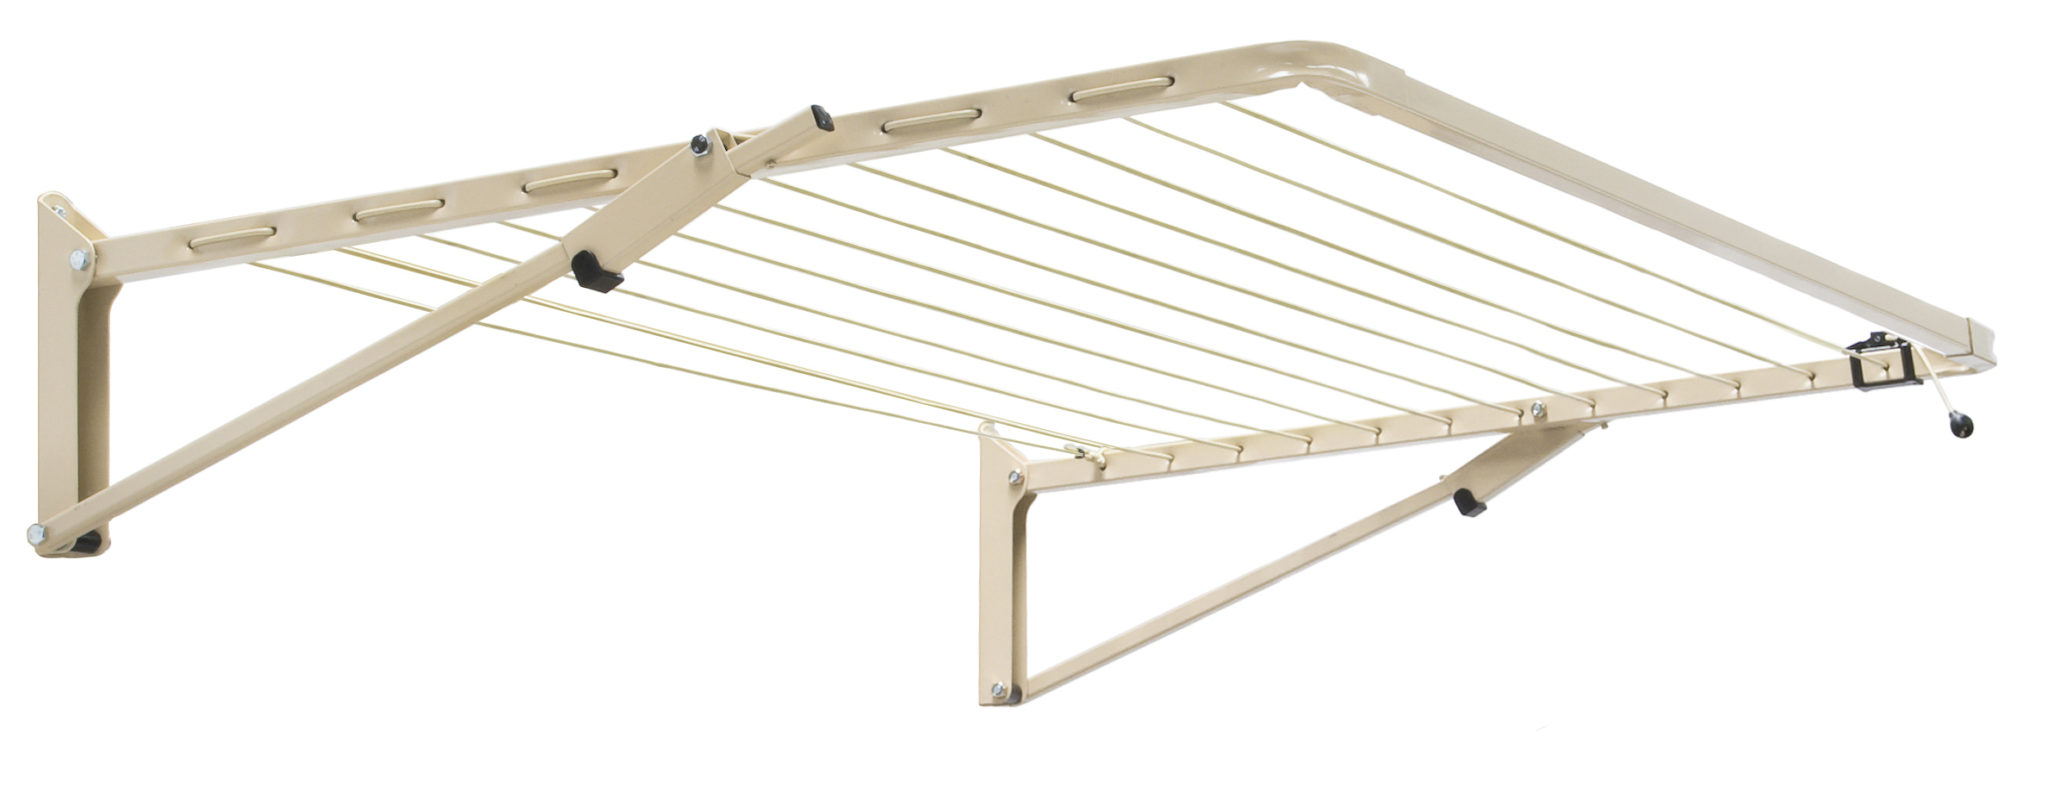 Austral Unit fold down clothesline in Classic Cream colour